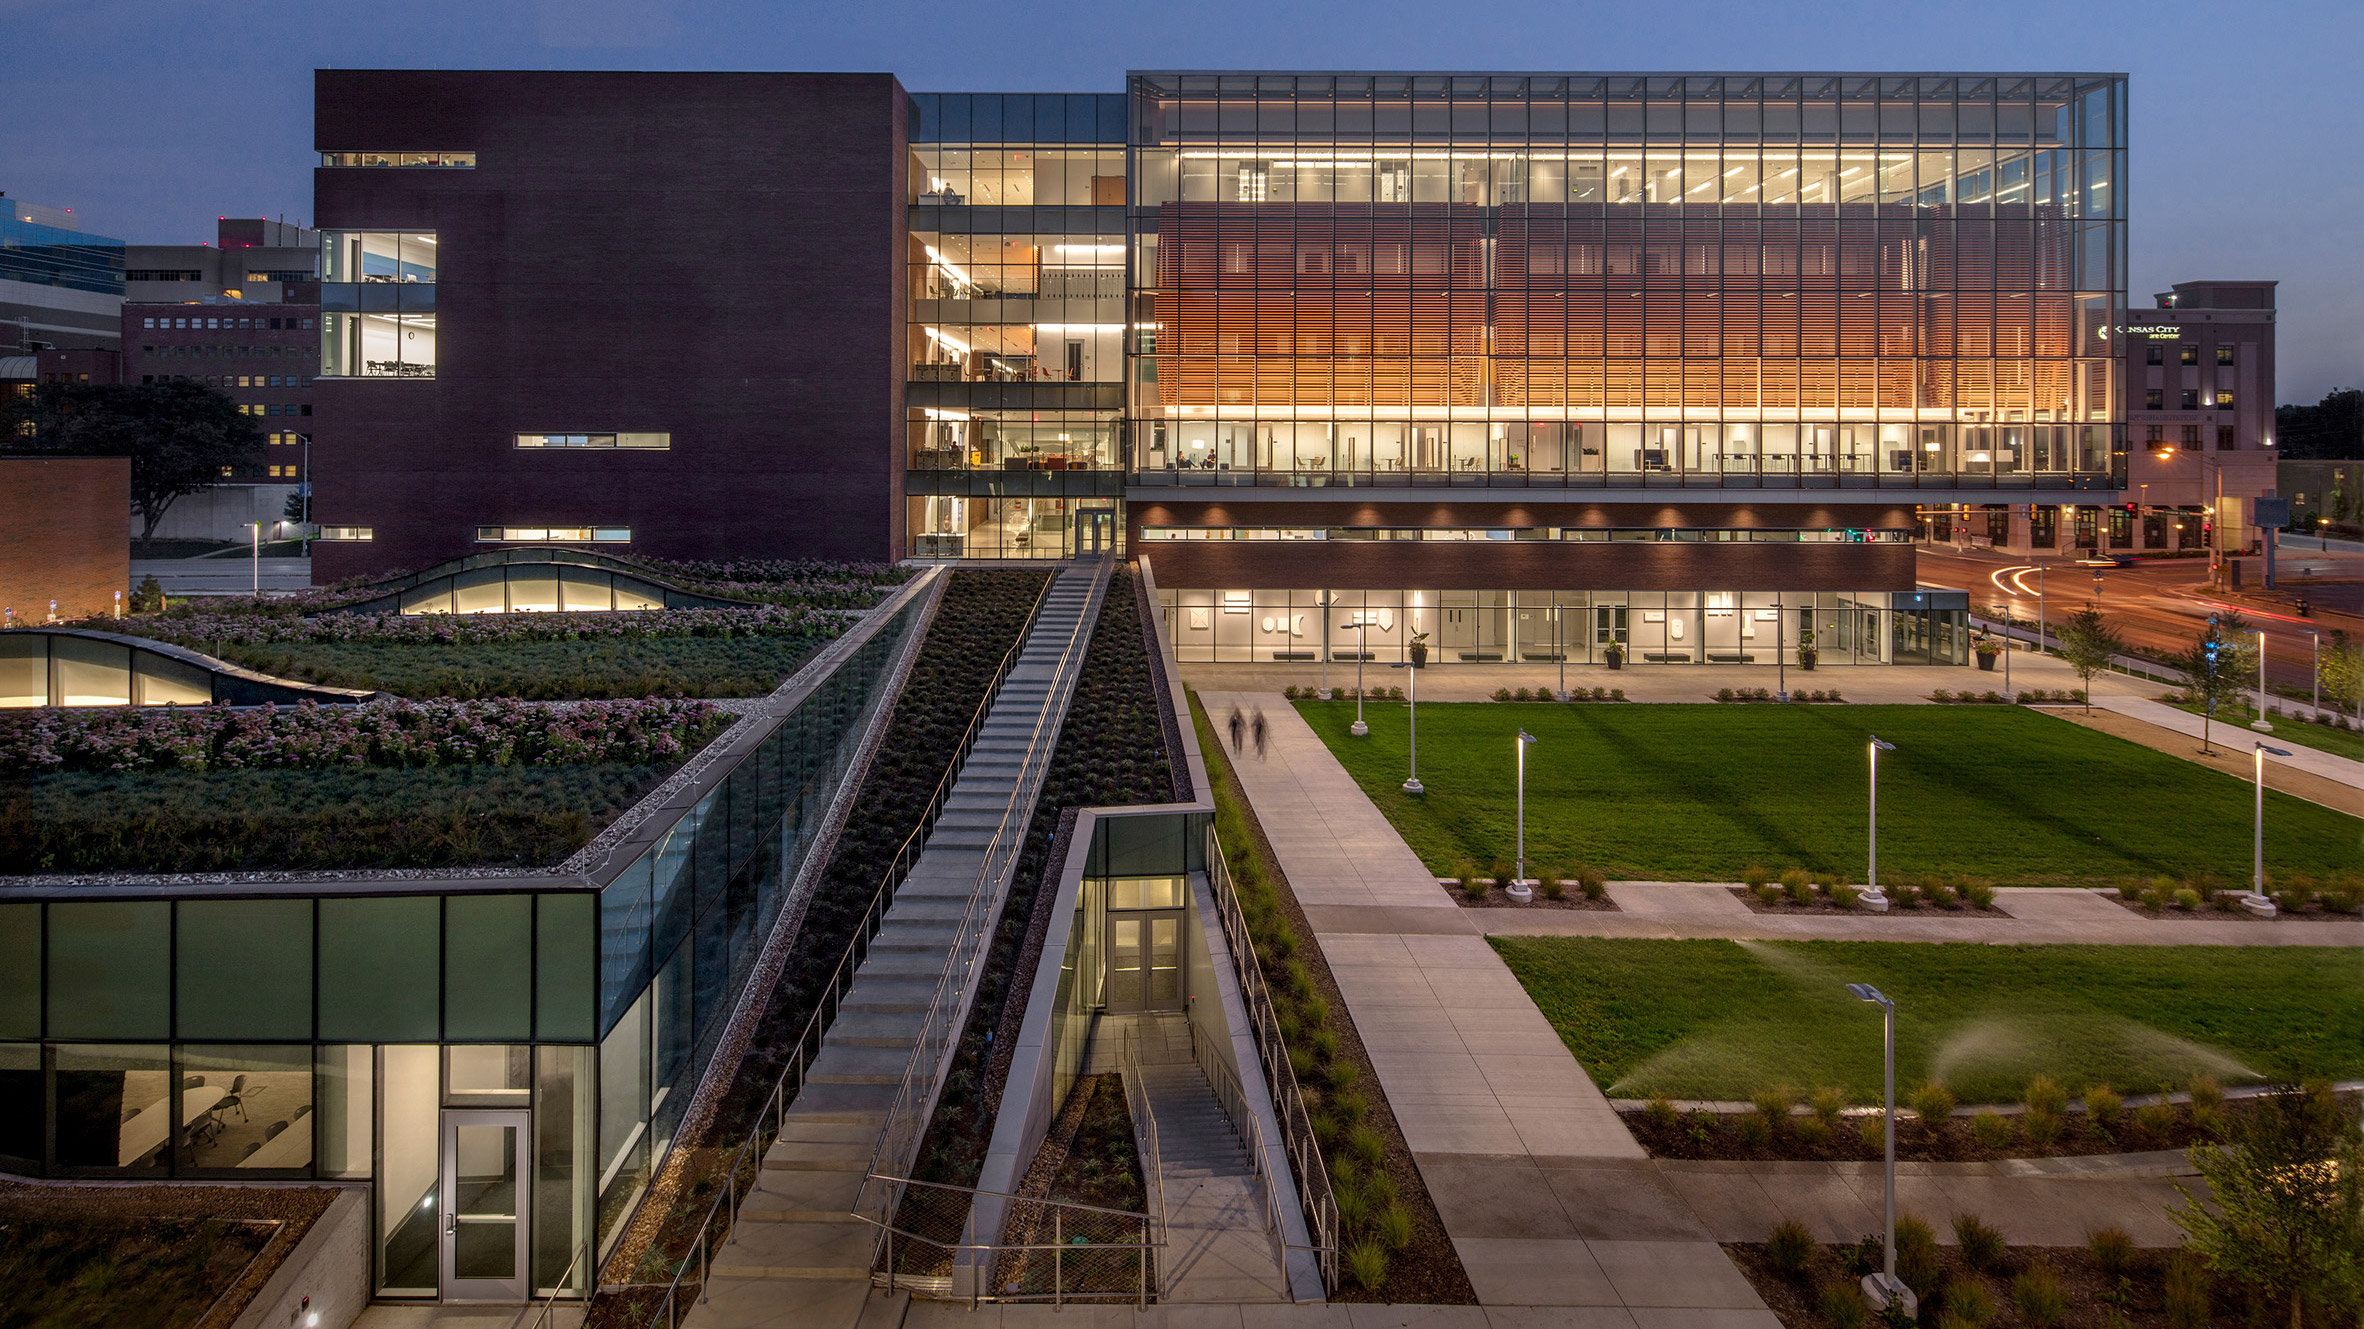 medical-center-university-of-kansas-co-architects-architecture-kansas-city-usa_dezeen_2364_col_3-852x479.jpg